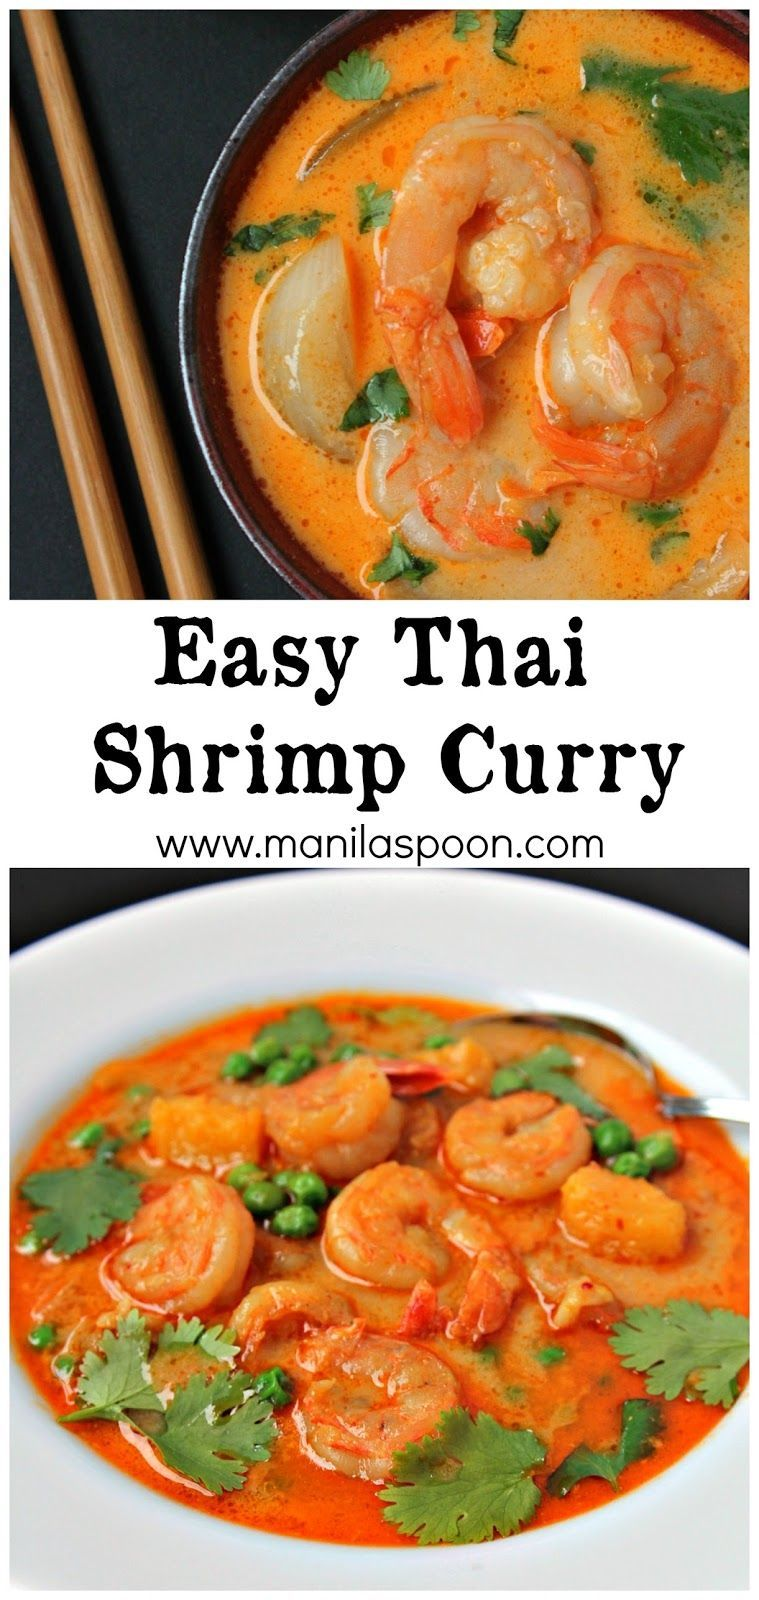 quick and easy way to make the most delicious Thai Shrimp Curry. Spicy deliciousness guaranteed! Freeze if there are left-overs - if there's any! :)